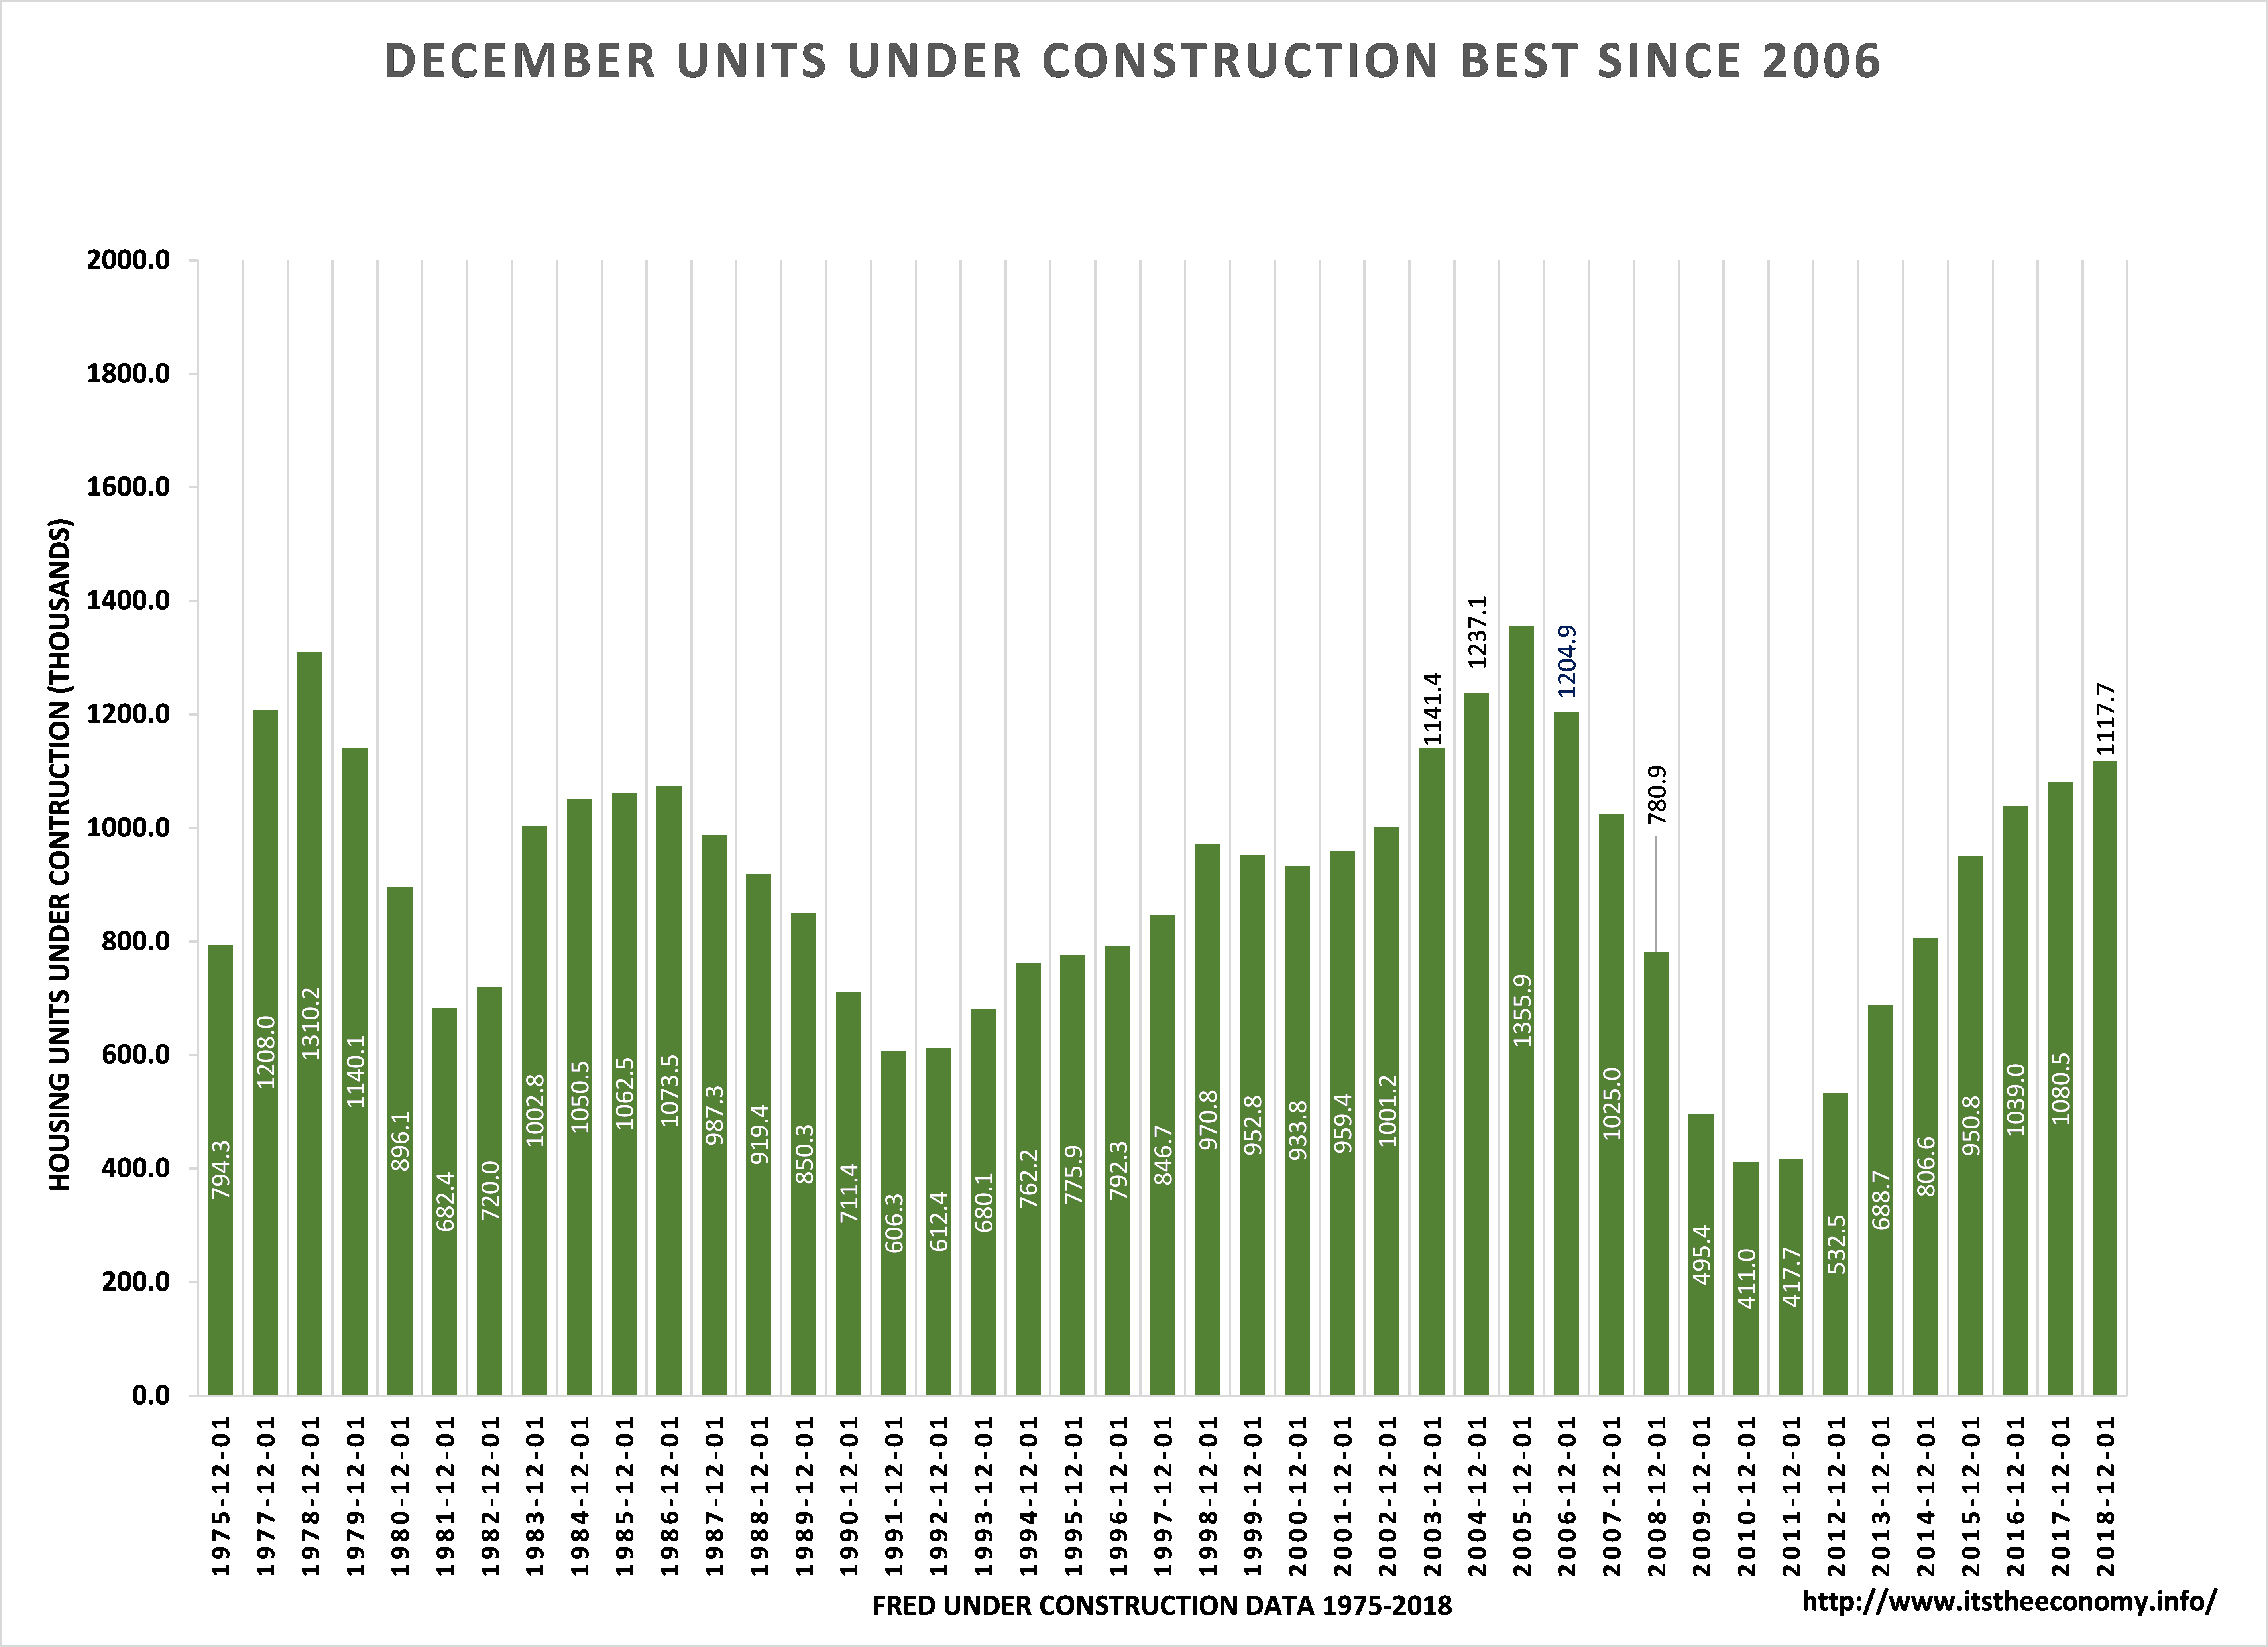 Units under construction improved from December 2017 and were better than the December Data from 2007 through 2017.